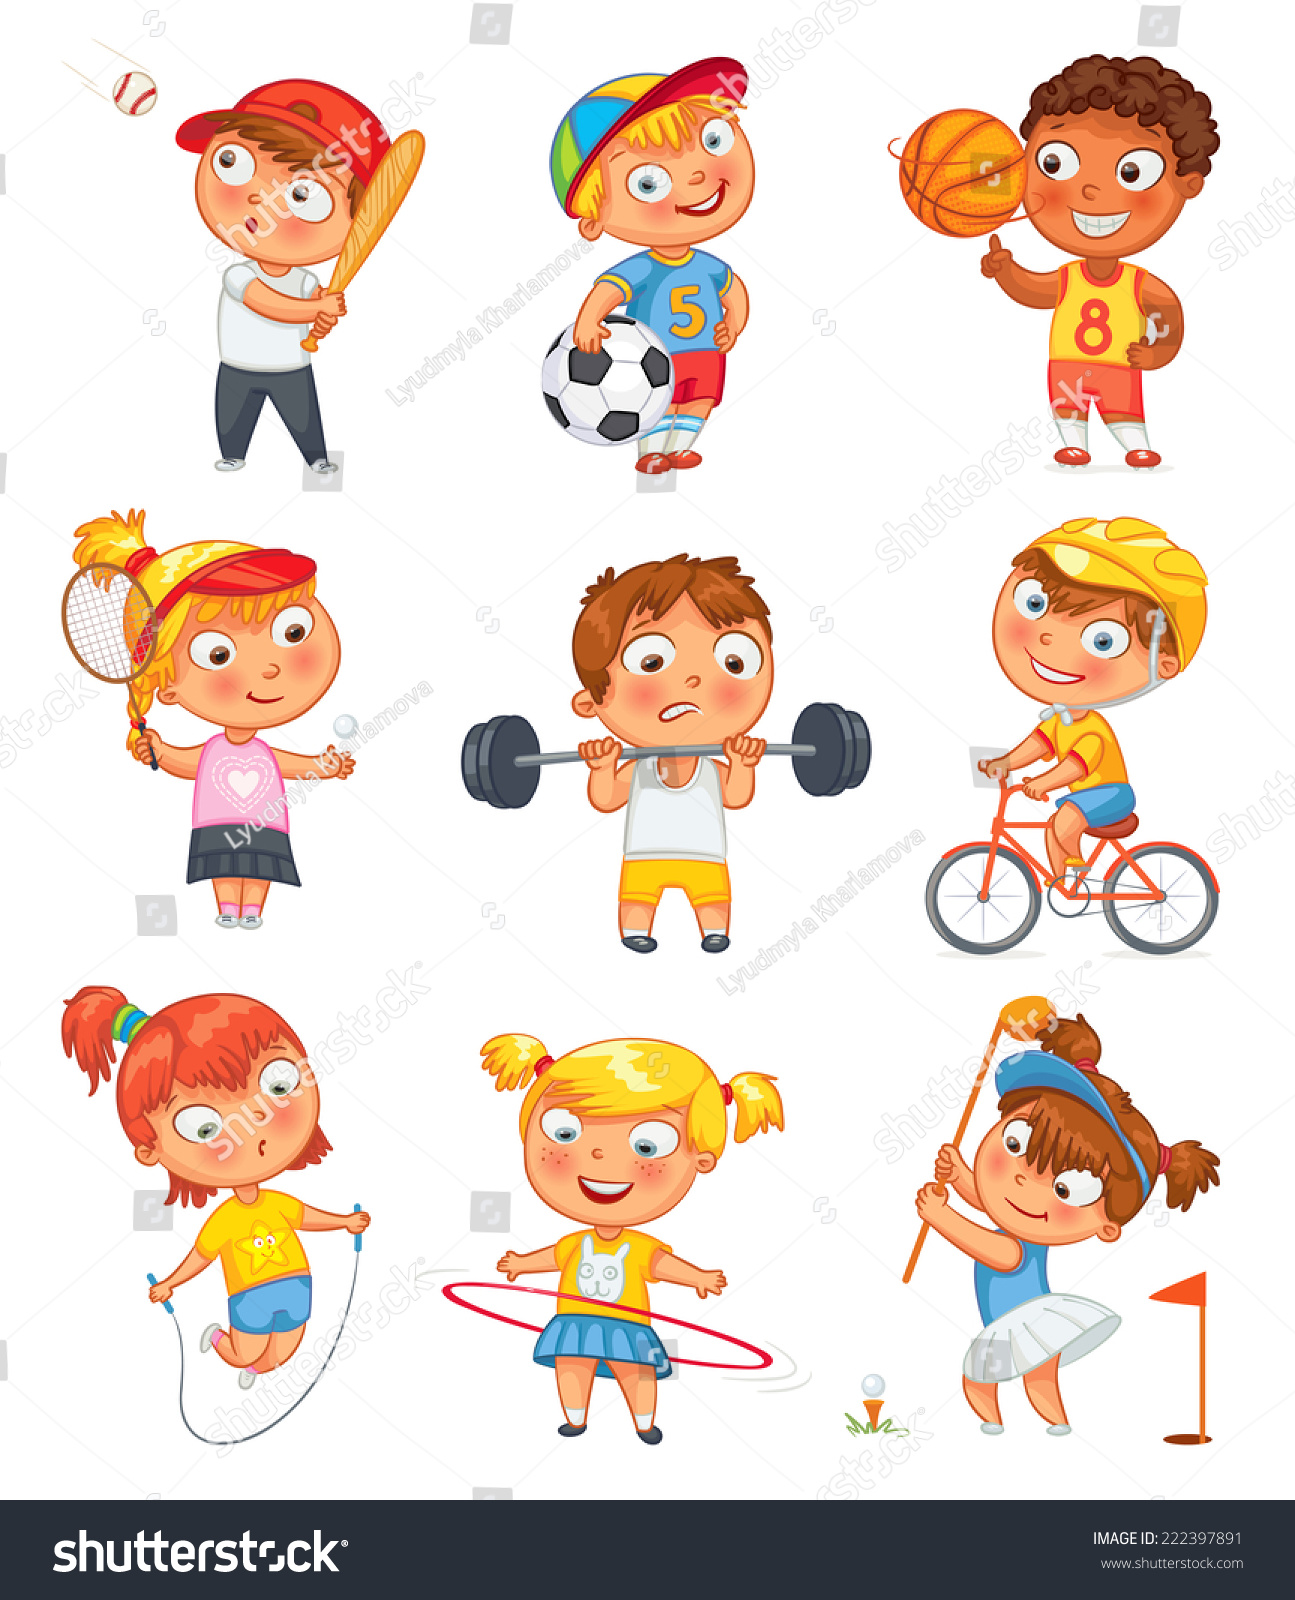 Sports Fitness Skipping Rope Hula Hoop Stock Vector 222397891 - Shutterstock